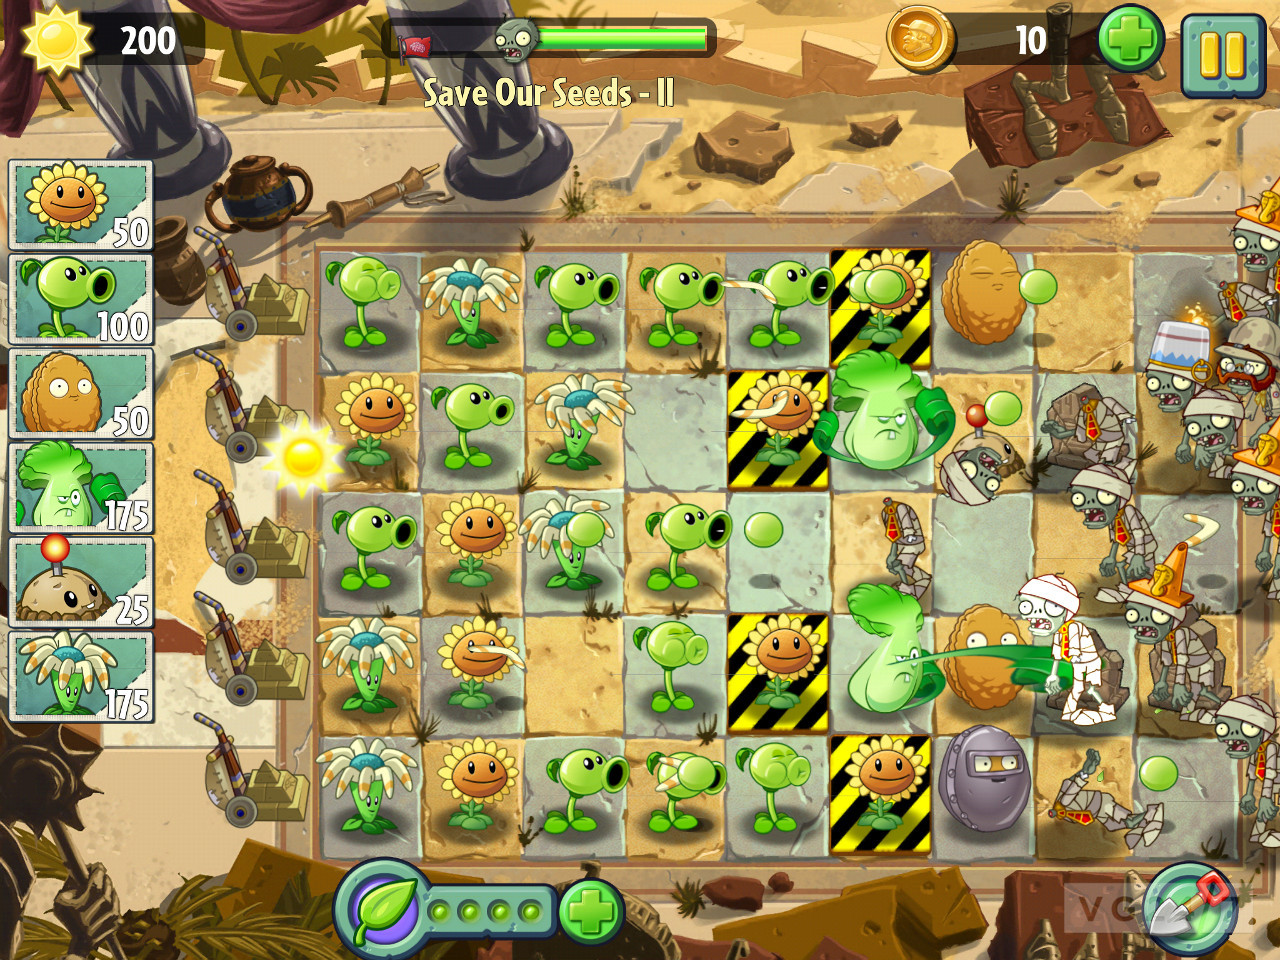 Plants Vs Zombies 2 8.2.1 HD For Android + Infinite